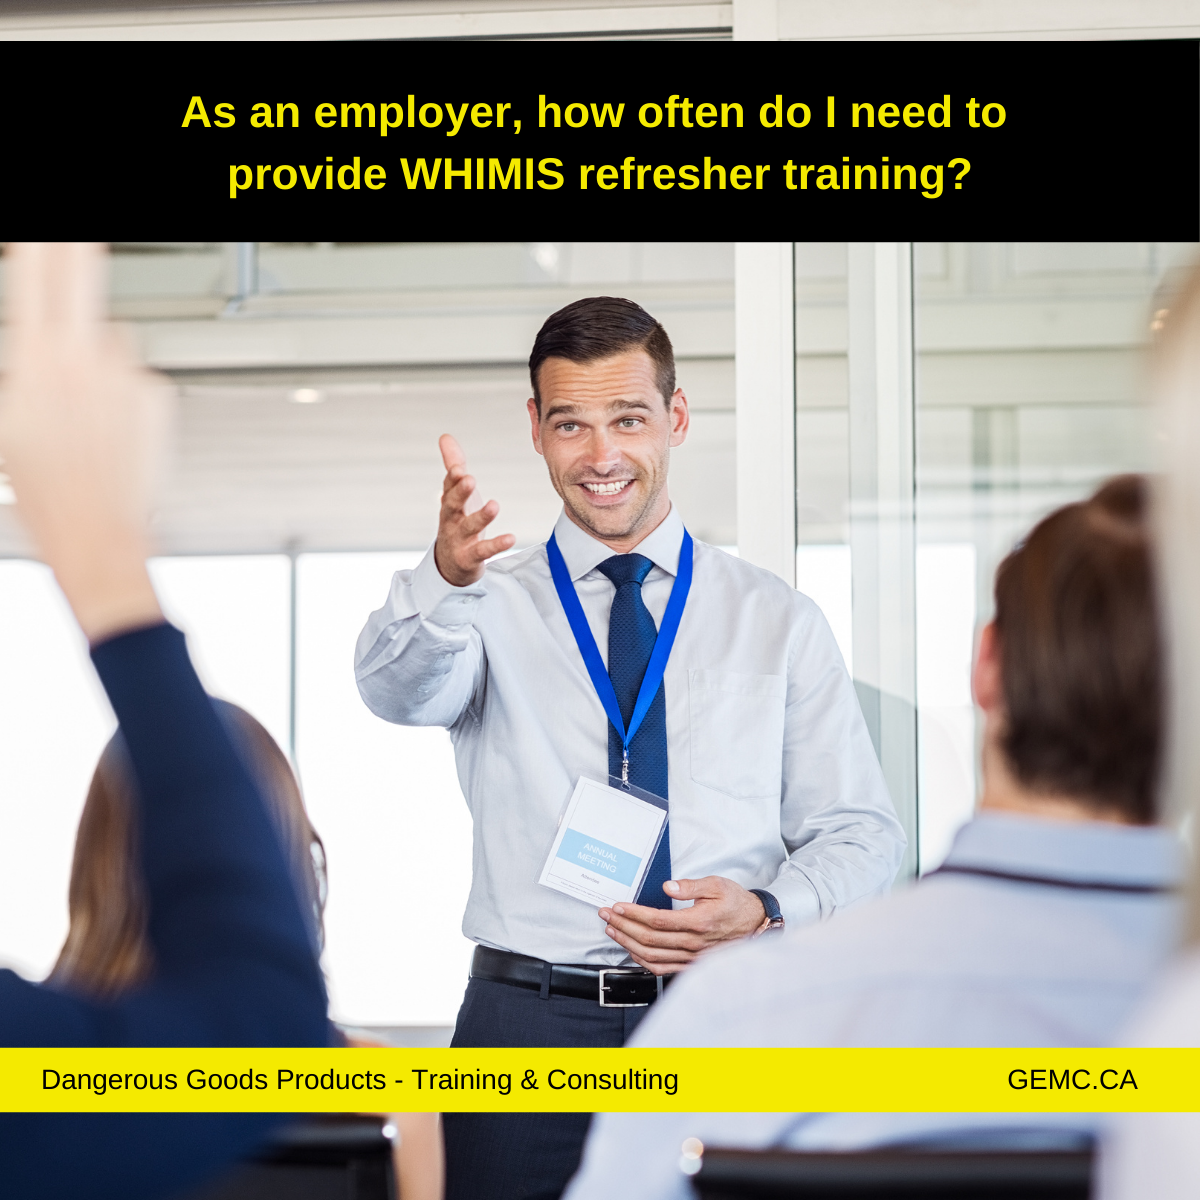 As an employer, how often do I need to provide WHIMIS refresher training?